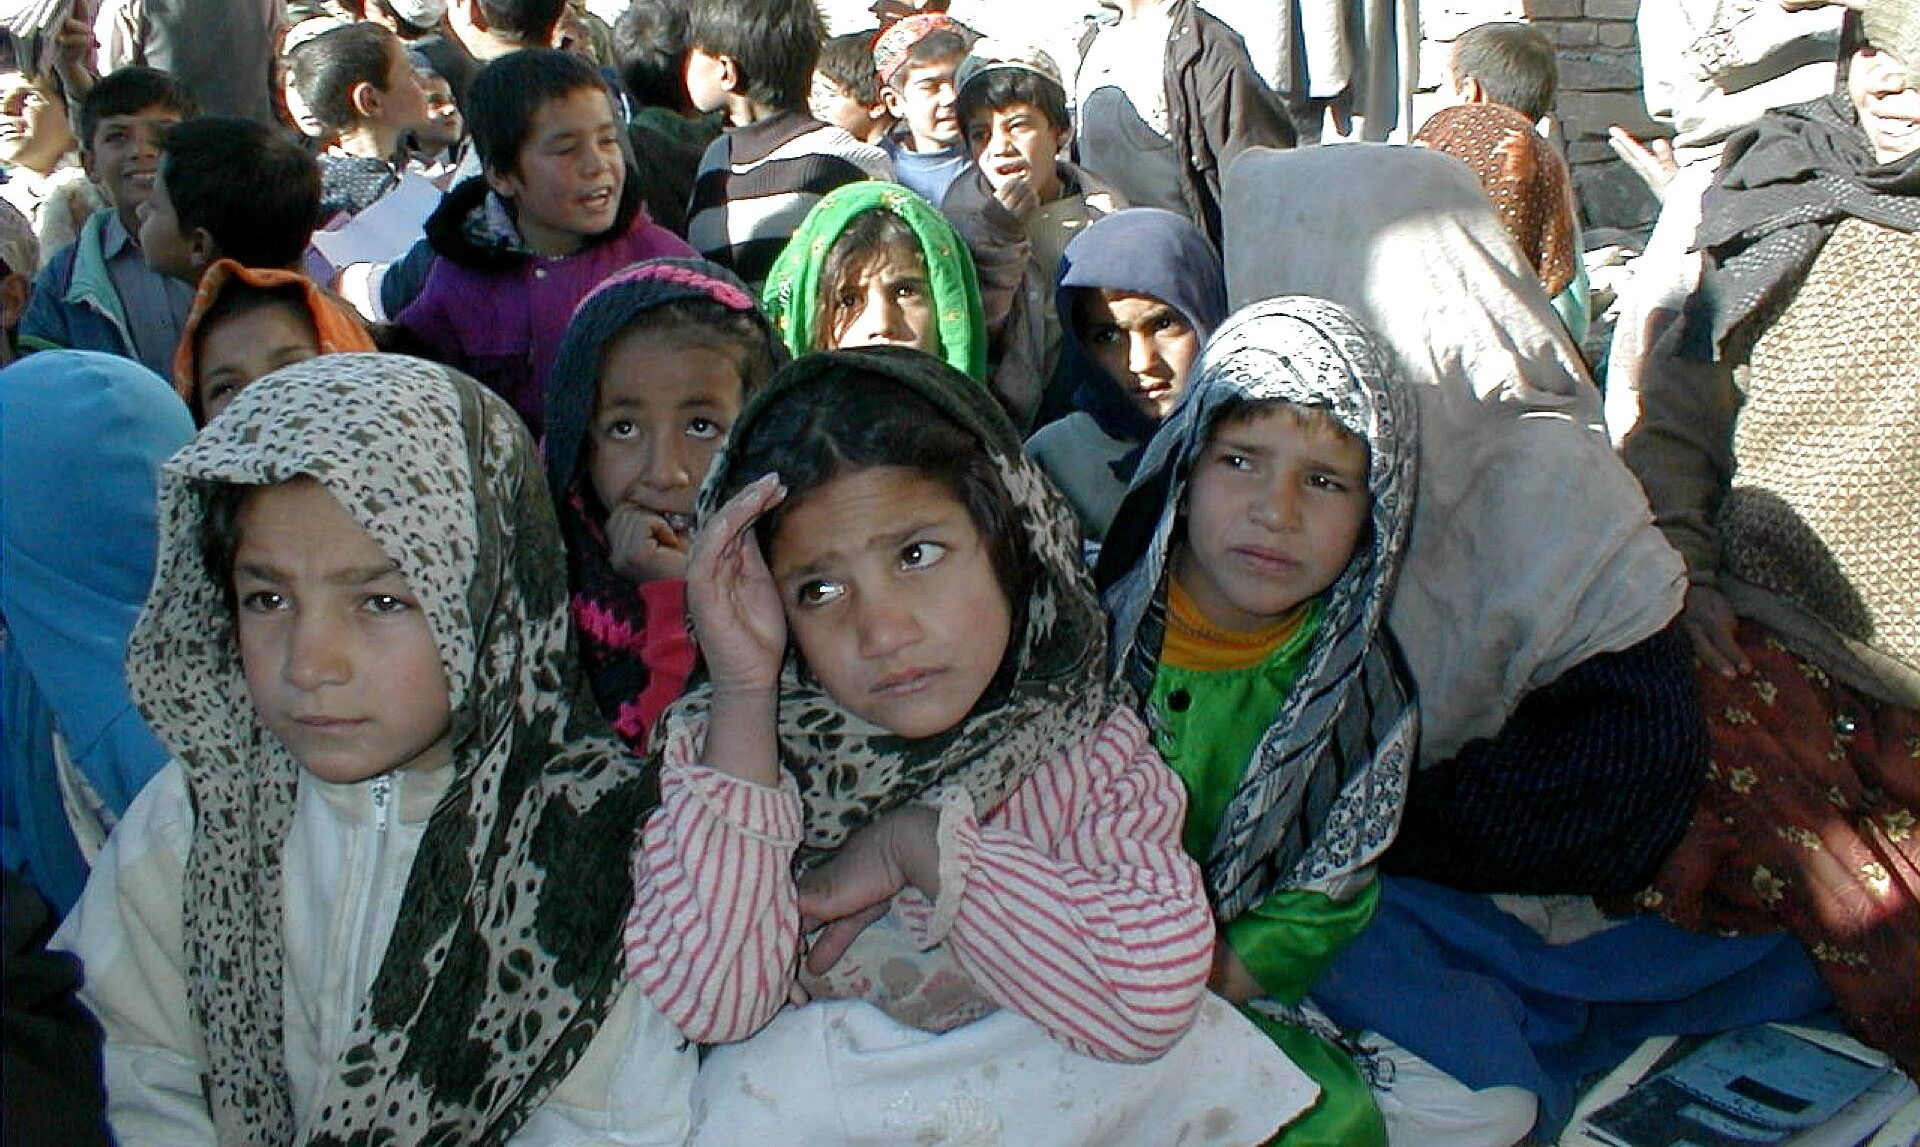 Children in Afghanistan attend class outdoors. (Photo/Guy Lawson-USAID)